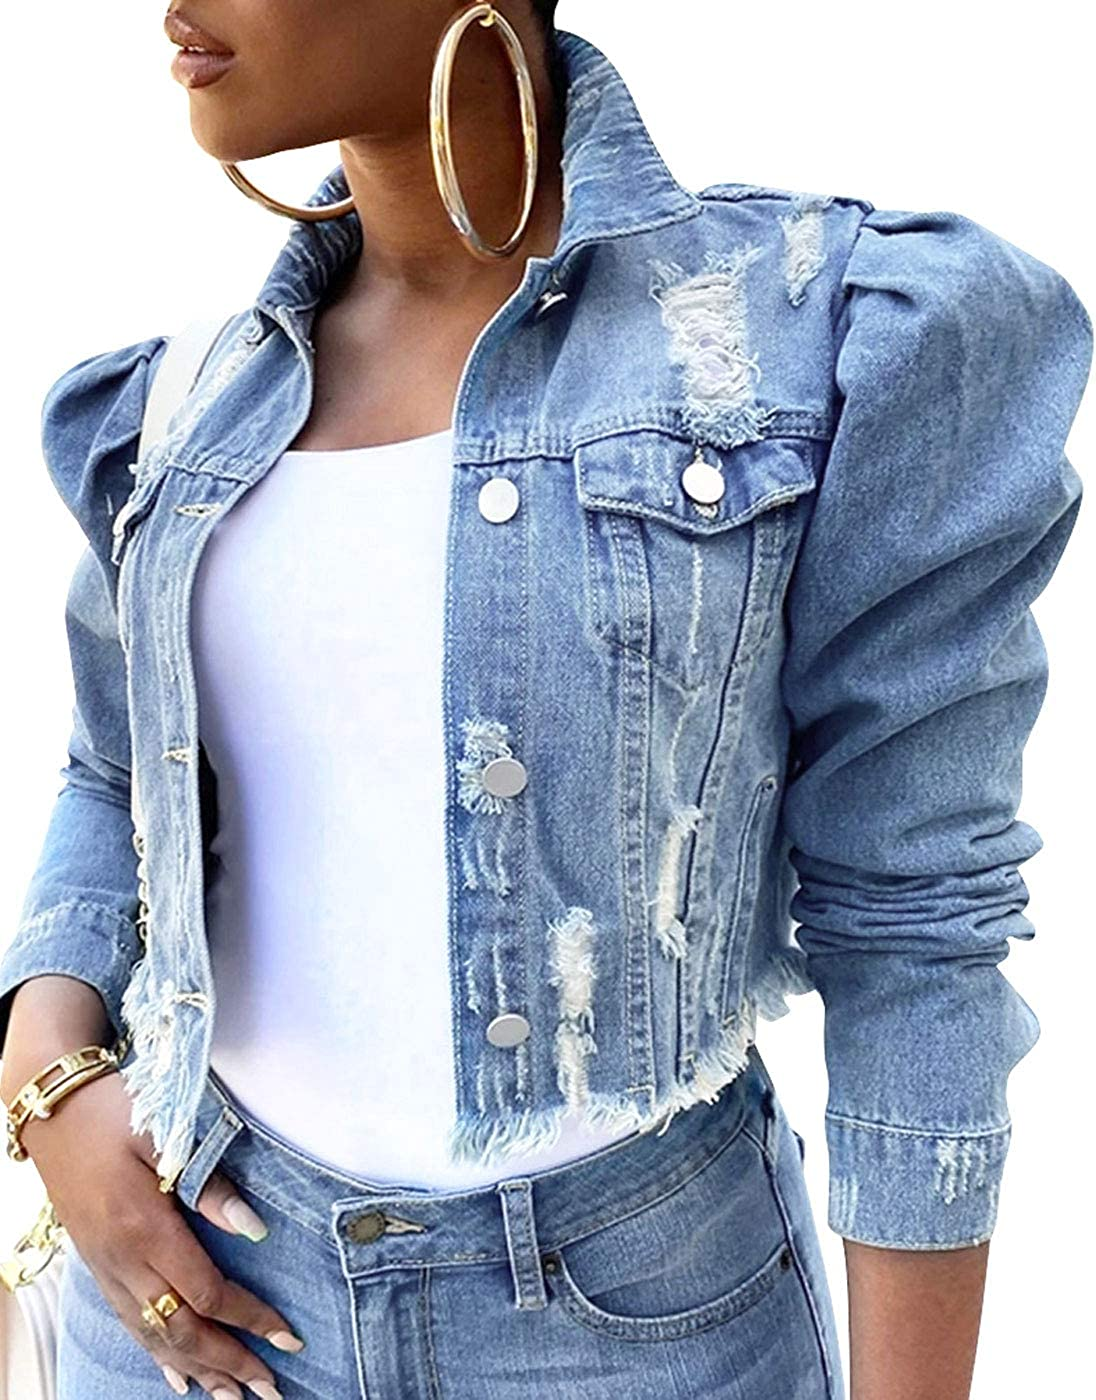 PICK YOUR LOOK Women's Denim Jean Jacket, Long Puff Sleeve Short Cropped Button Down